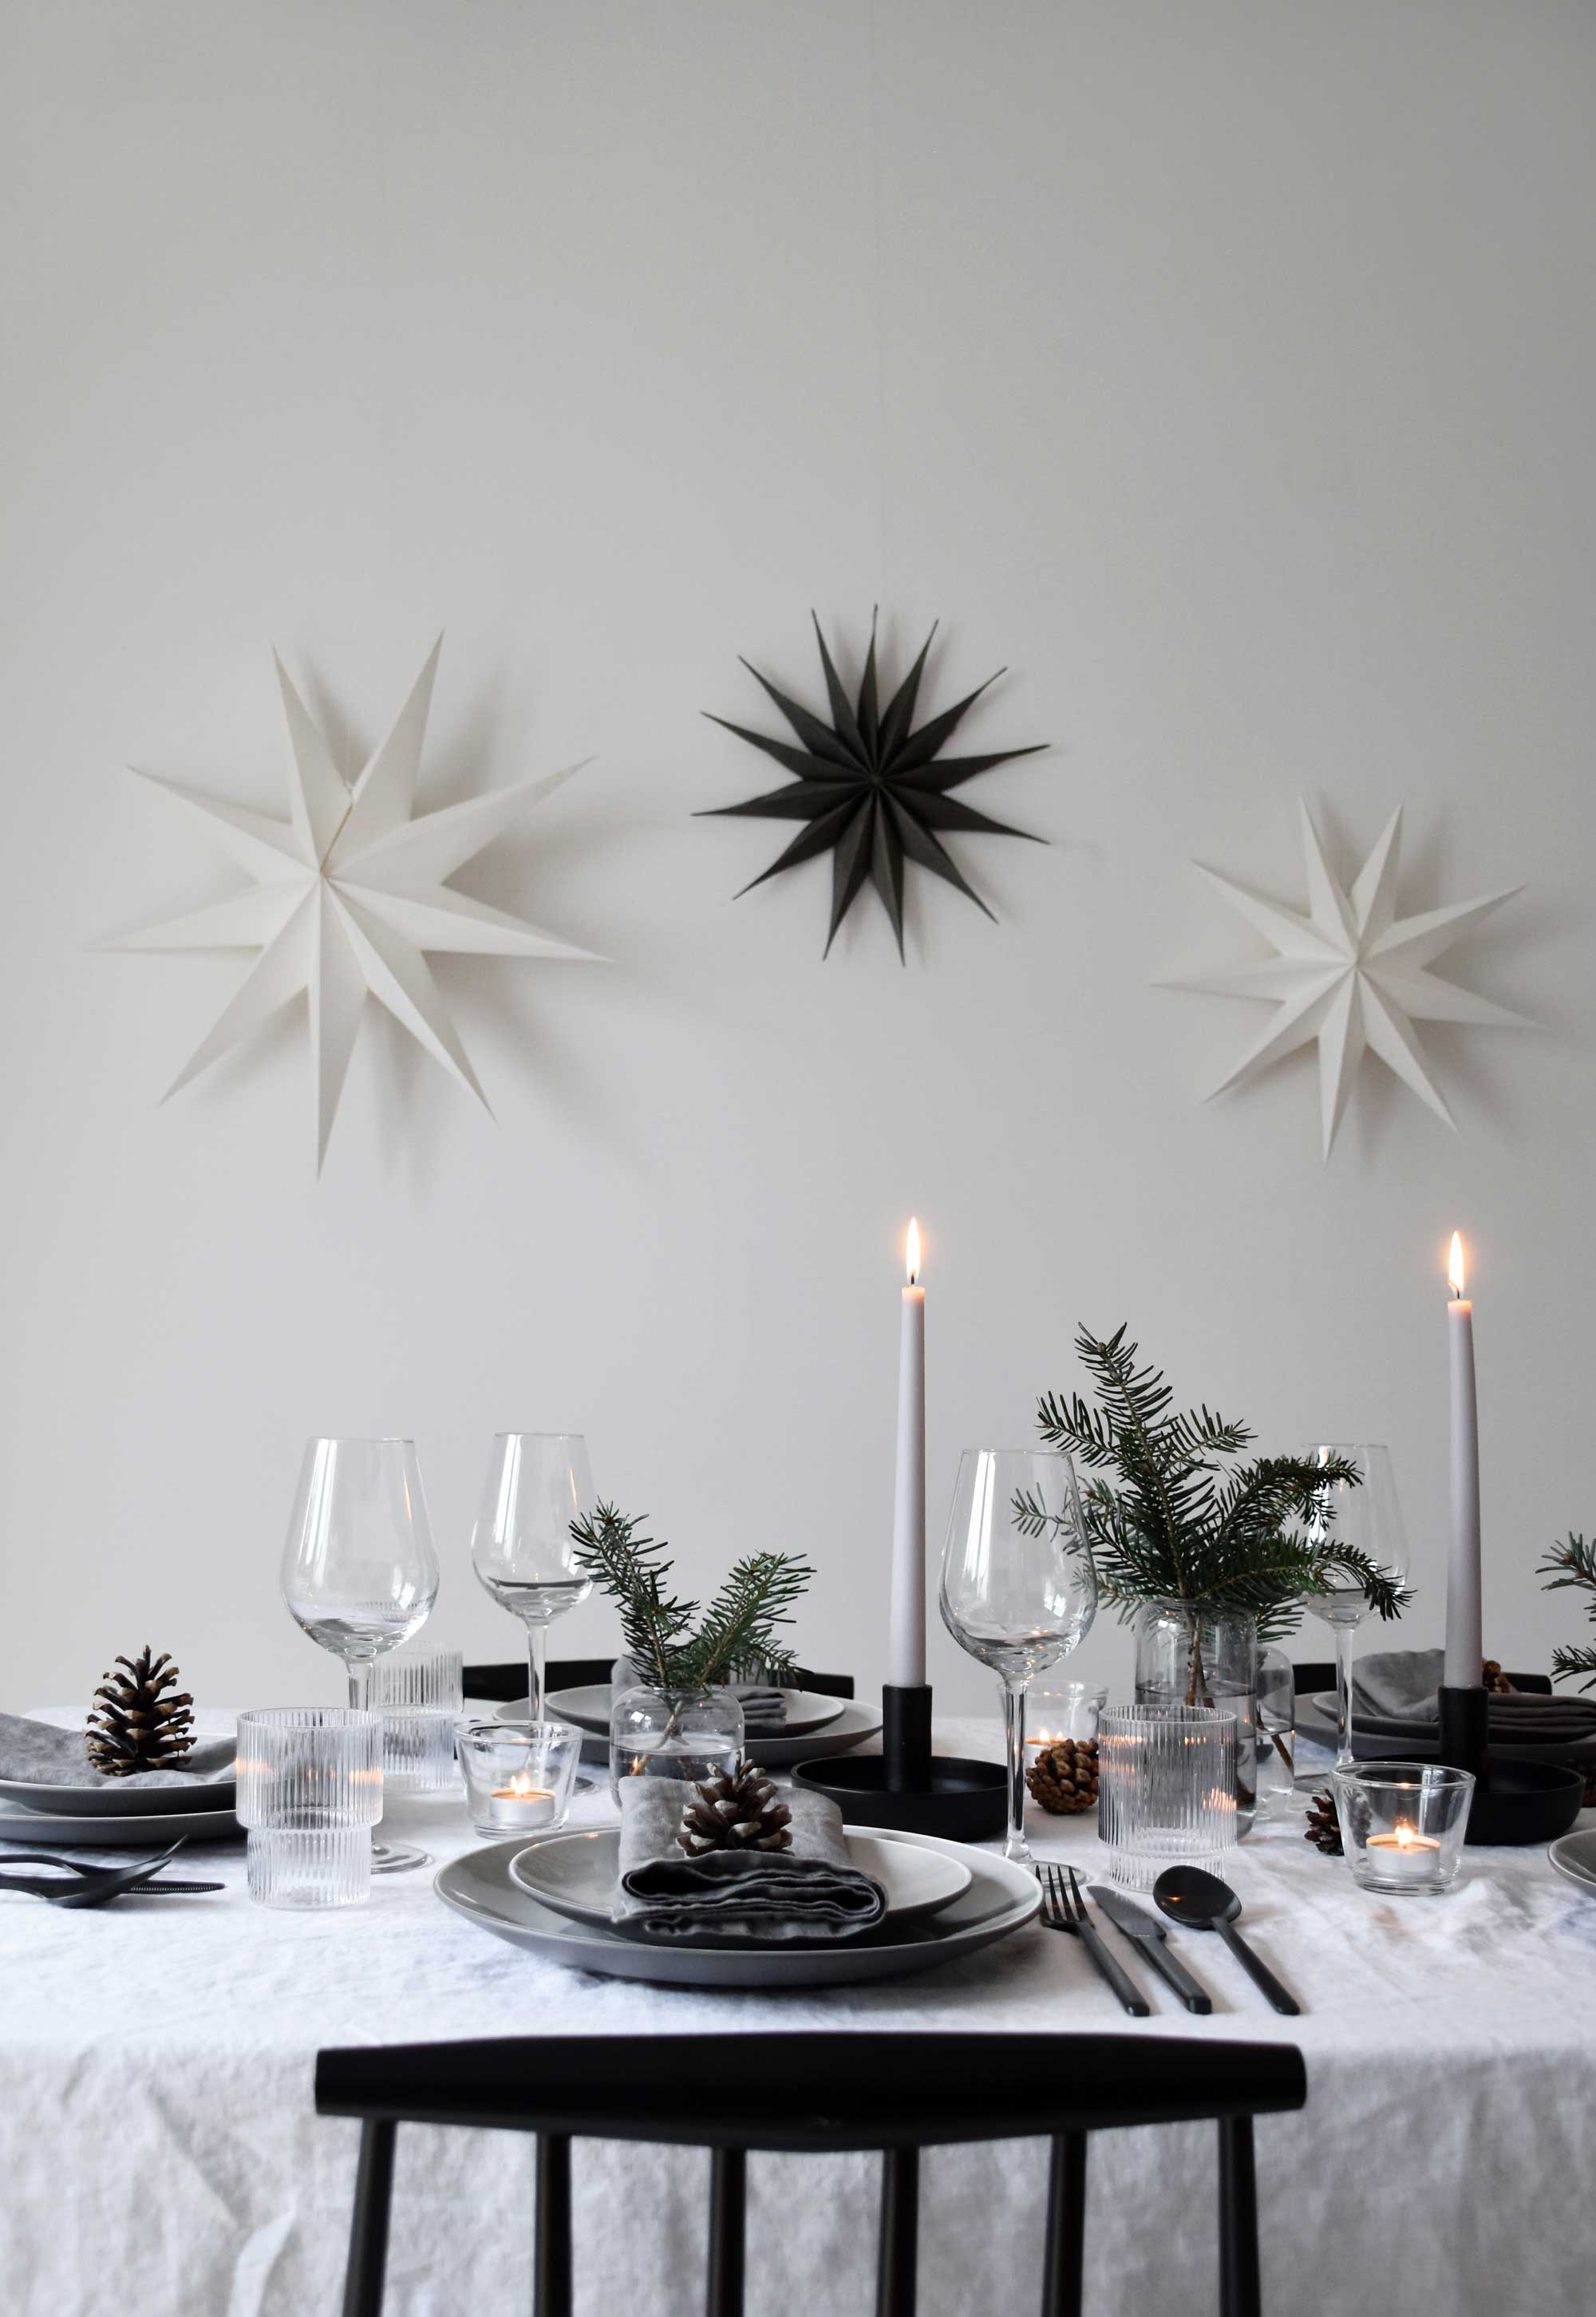 Simple Christmas decorating ideas using paper stars